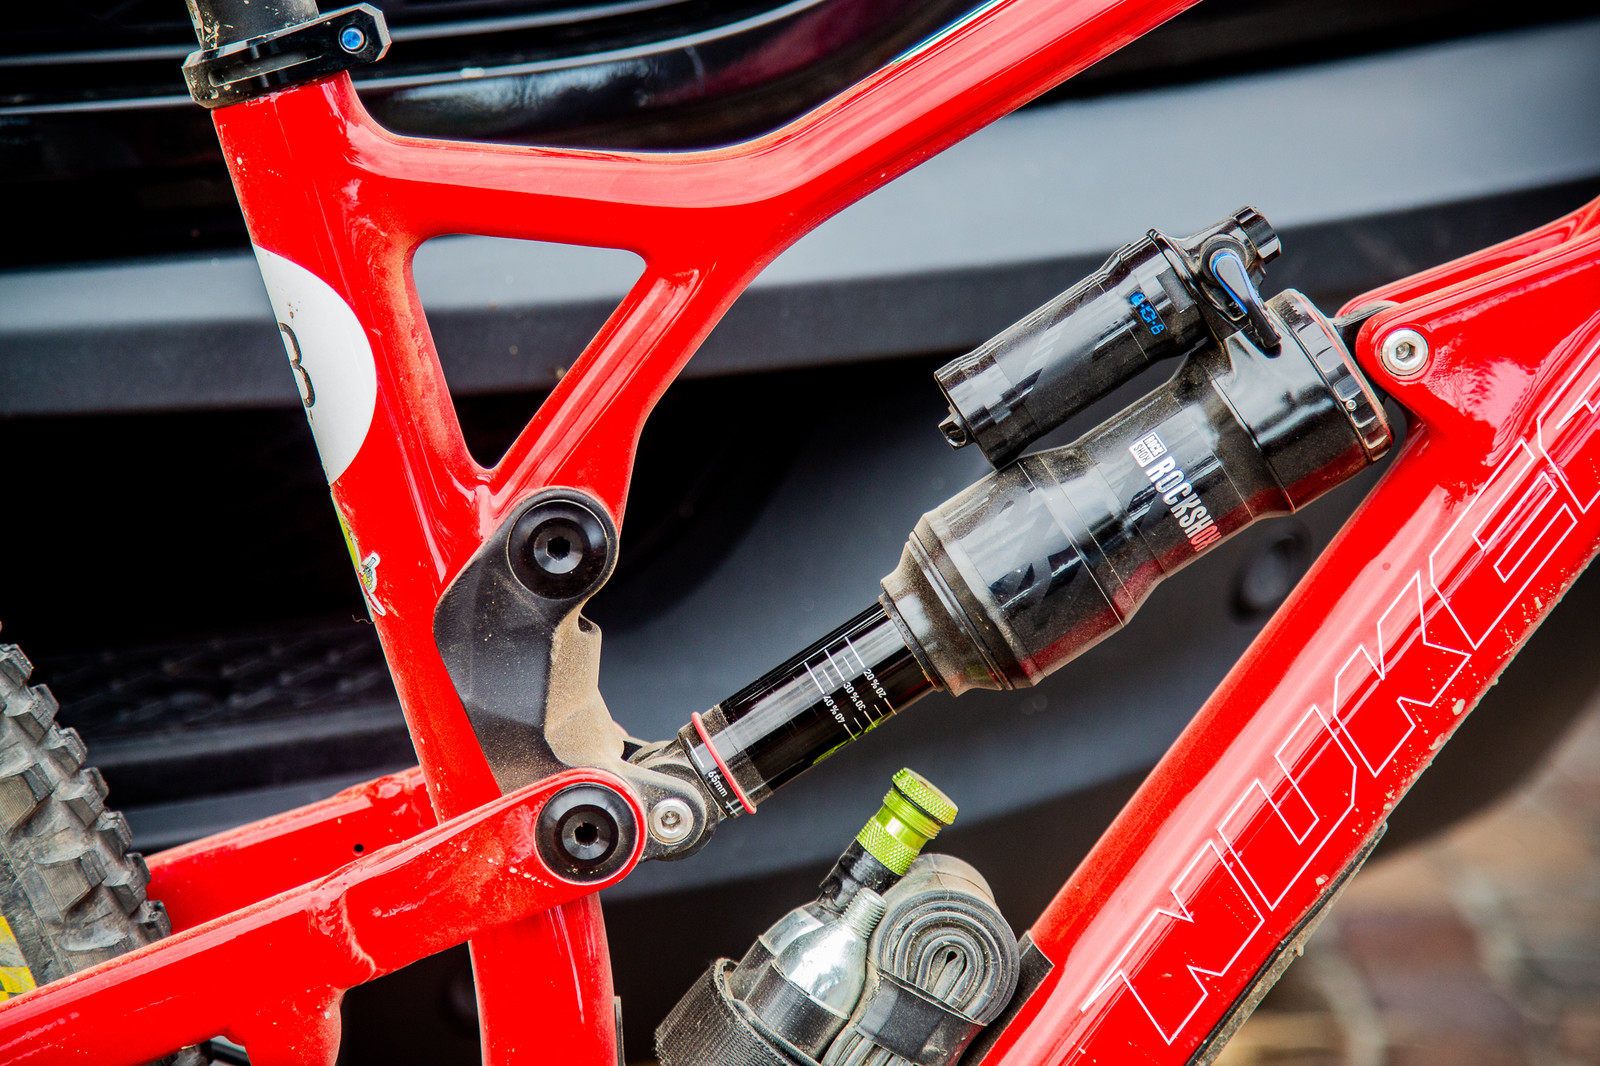 Sam Hill's Custom Trophy of Nations Nukeproof Mega - PIT BITS - Enduro Trophy of Nations - Mountain Biking Pictures - Vital MTB